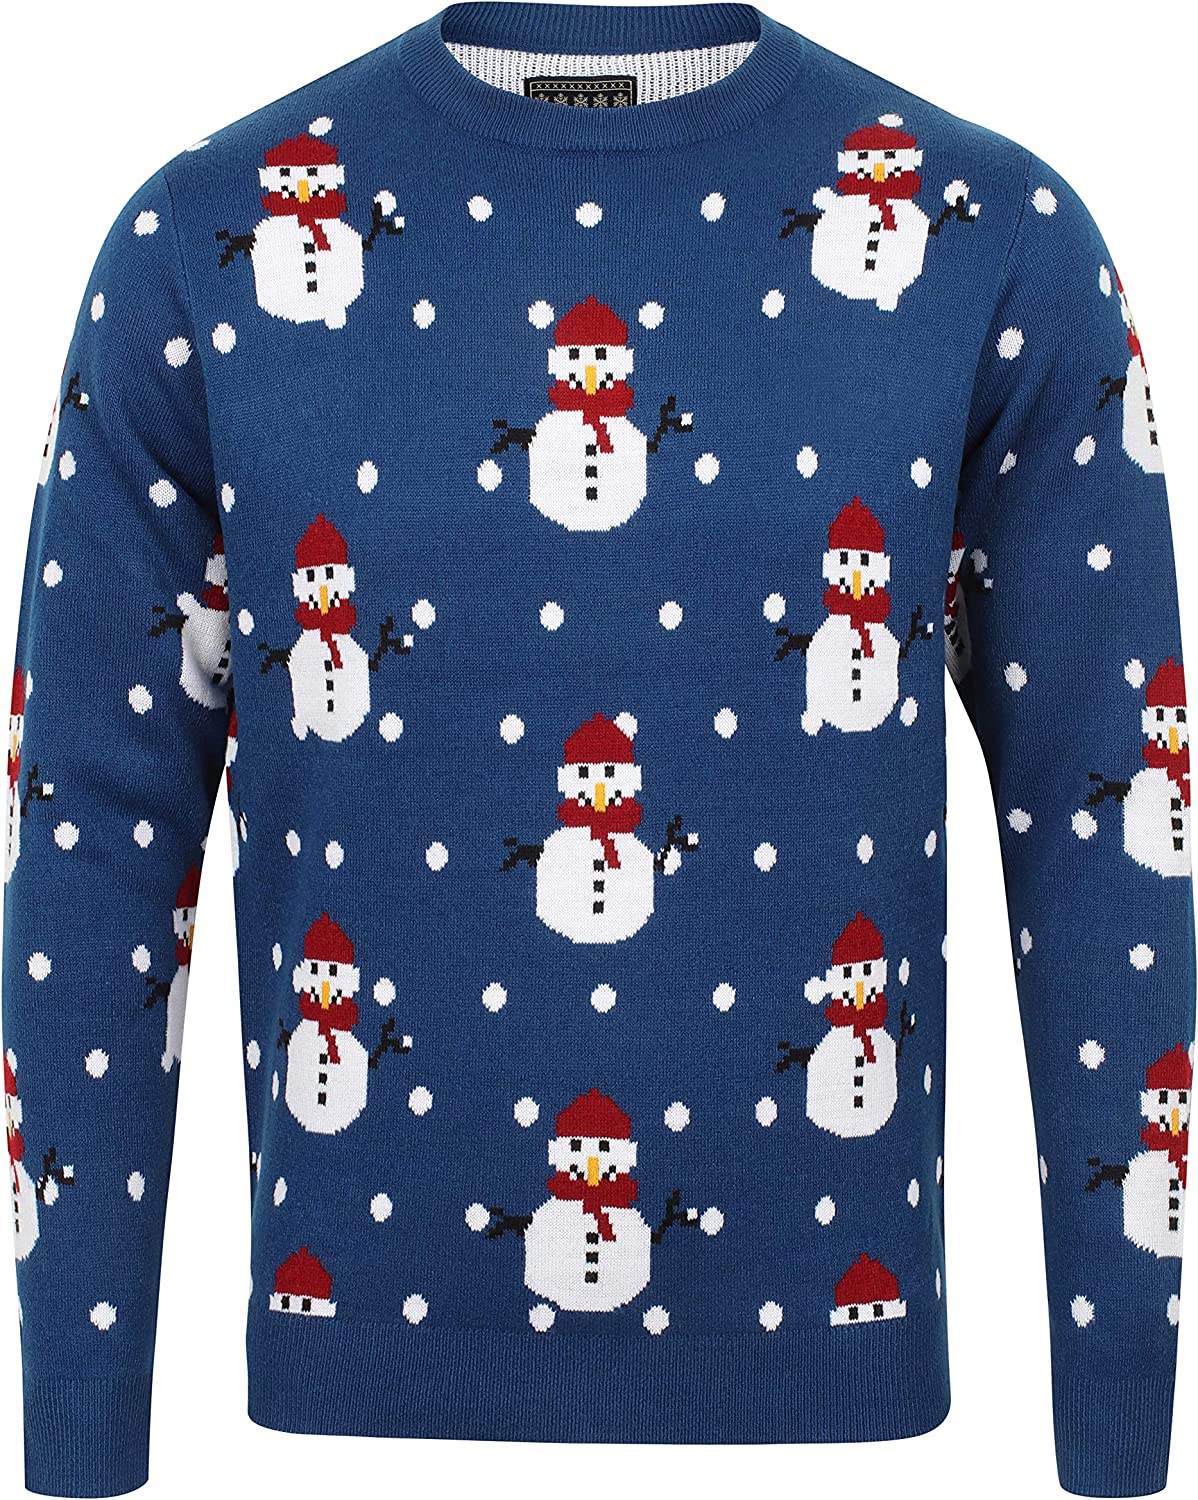 Seasons Greetings Adults Snowman Knitted Christmas Jumper//Sweater